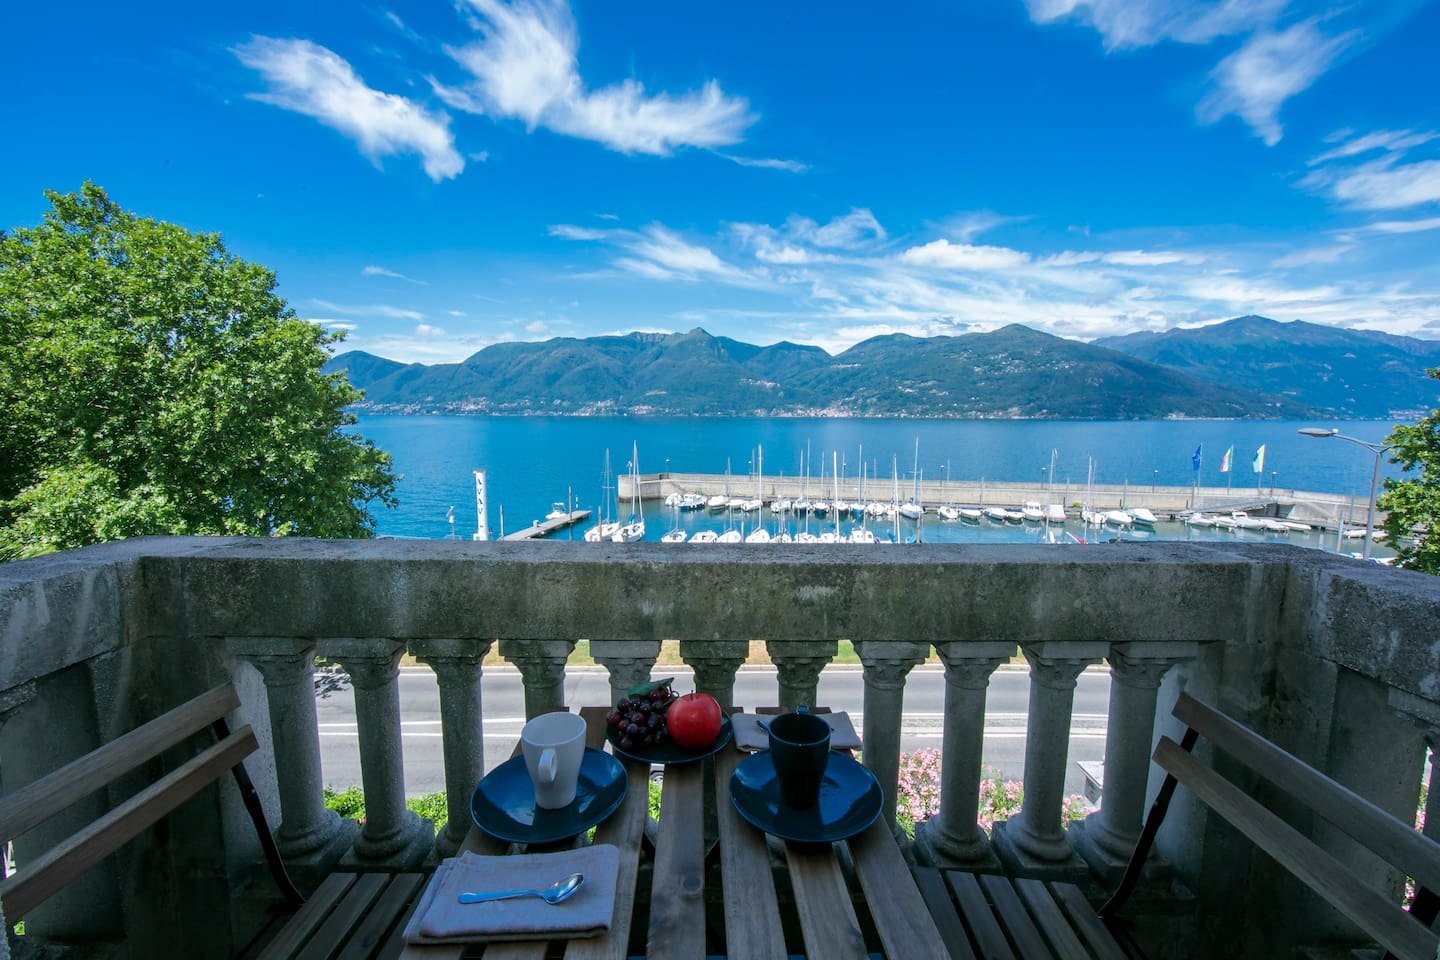 View from the balcony on the lake and the harbor of Luino